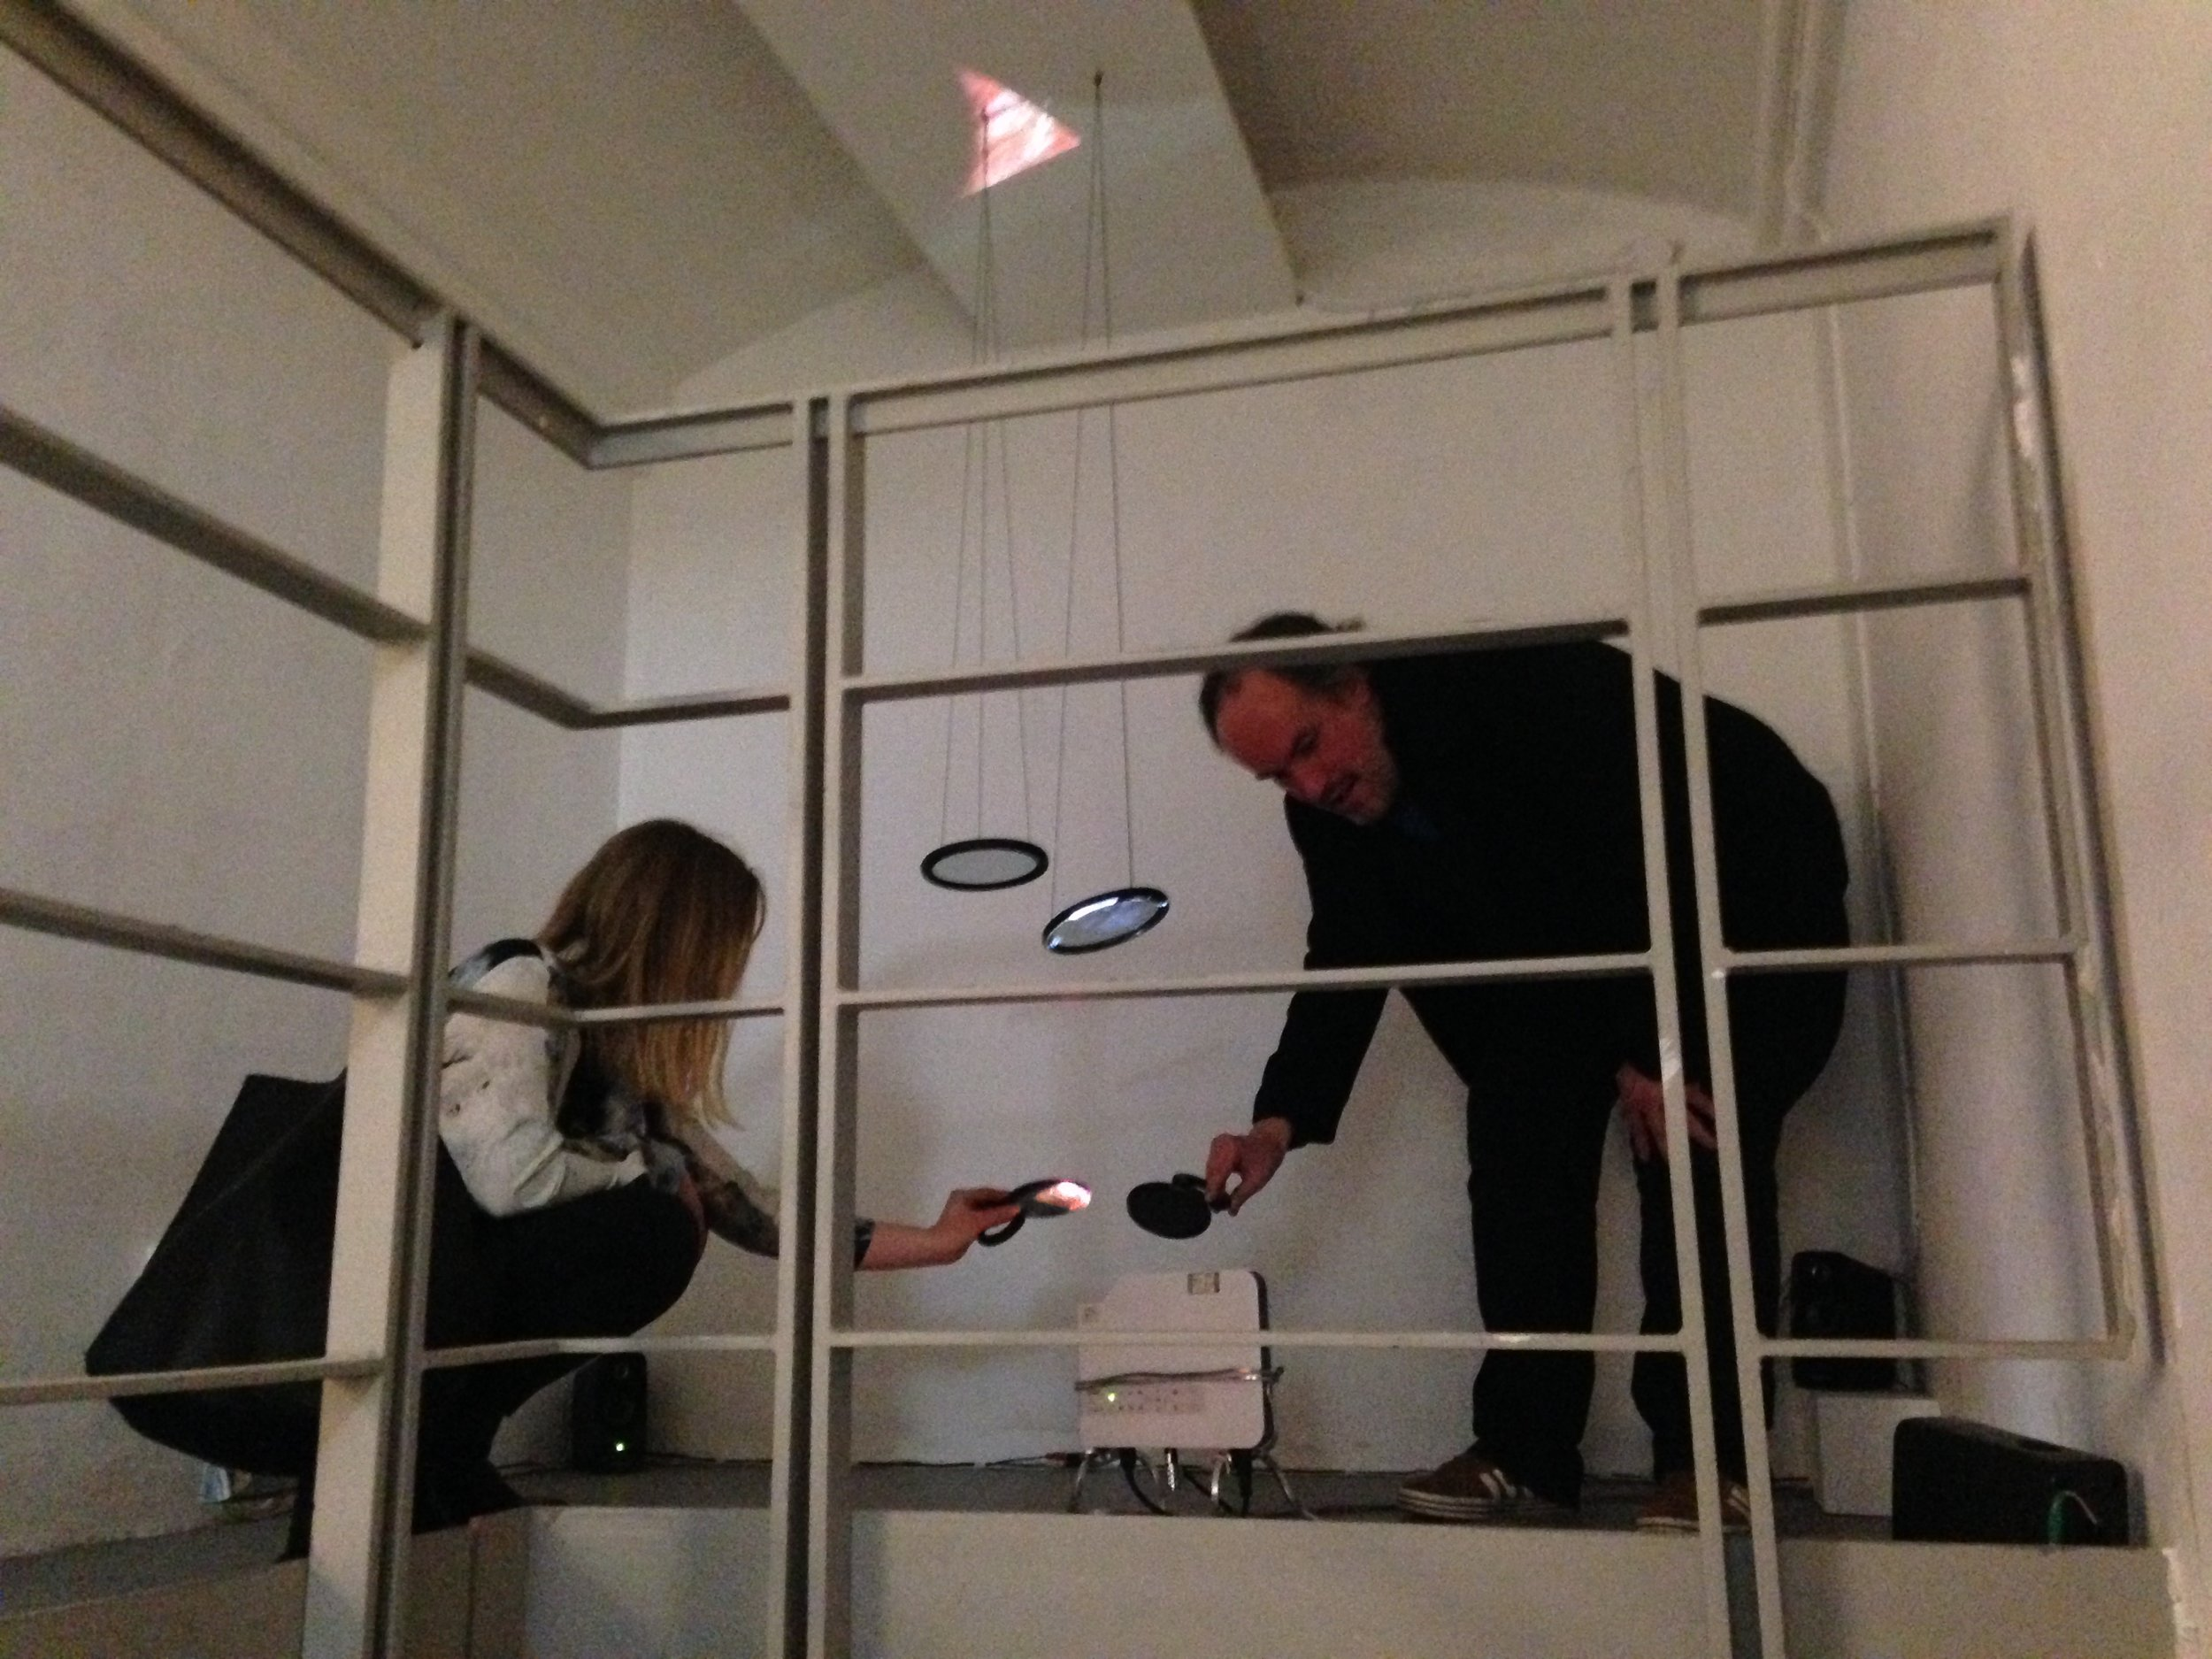 Two viewers exploring the projection using handheld mirrors